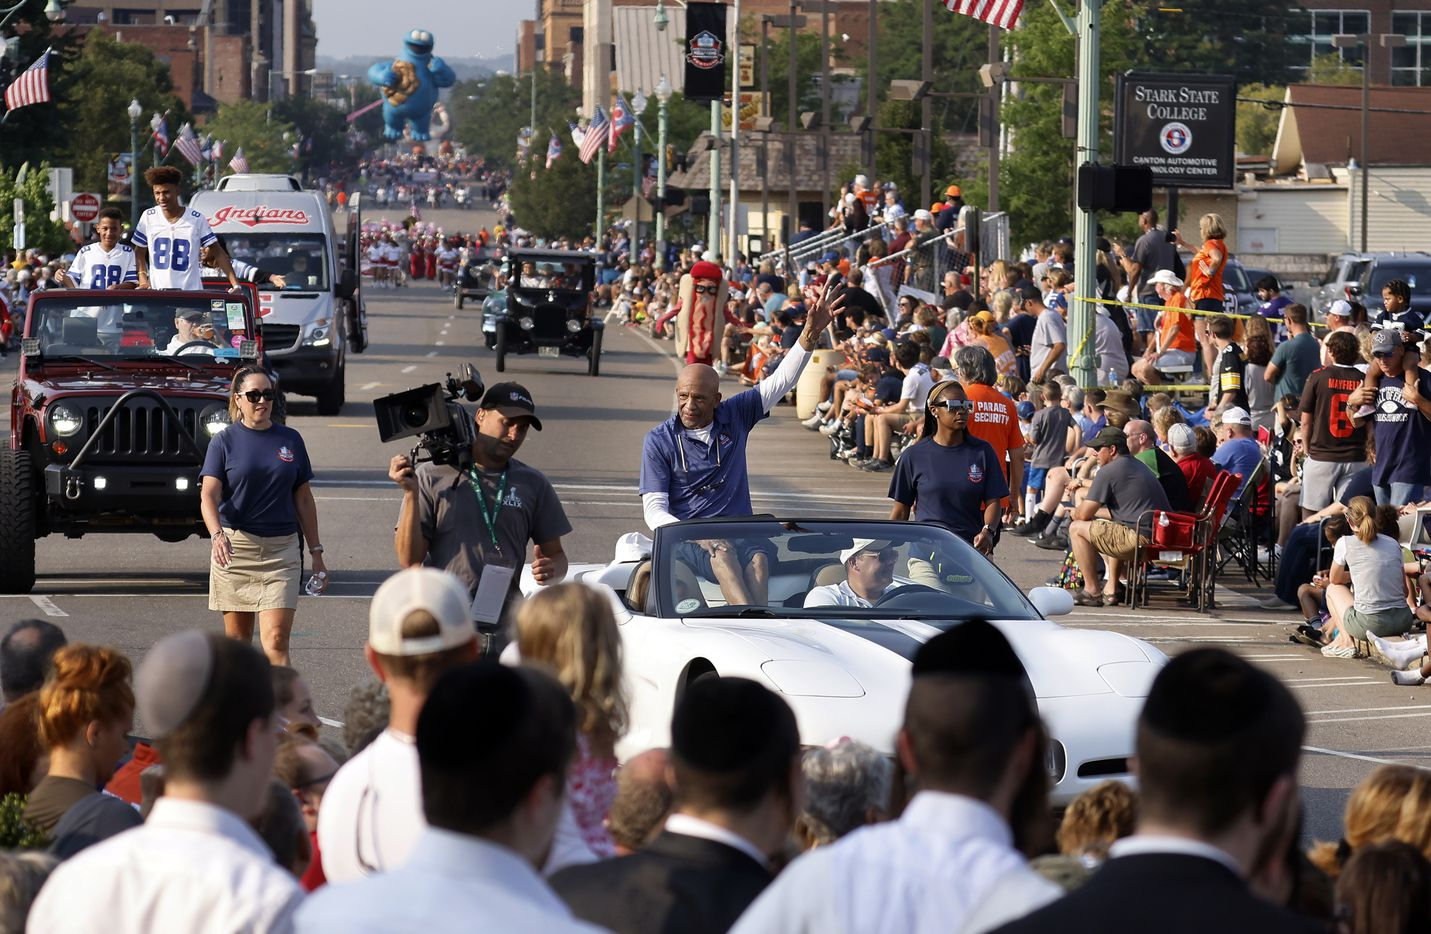 Dallas Cowboys Pro Football Hall of Fame inductee Drew Pearson waves to fans along the Canton Repository Grand Parade route in downtown Canton, Ohio, Saturday, August 7, 2021. Family members of his rode behind him in the parade honoring newly elected and former members of the Hall, including newcomers and former Dallas Cowboys players Cliff Harris, Drew Pearson and head coach Jimmy Johnson. (Tom Fox/The Dallas Morning News)